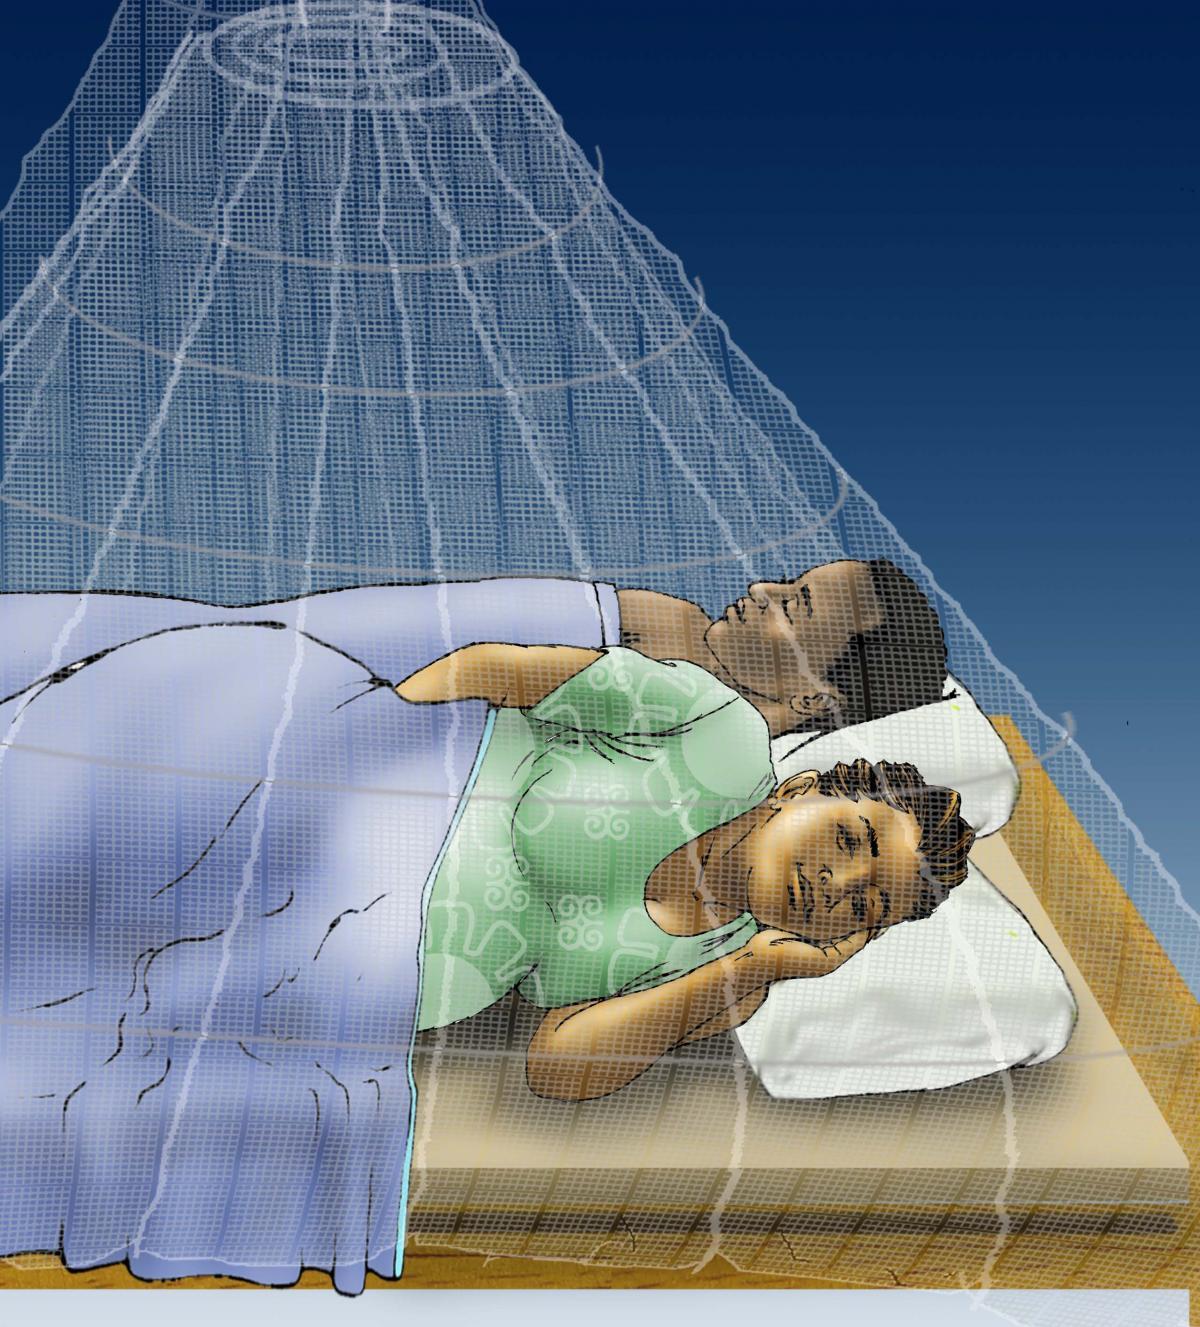 Malaria - Pregnant woman sleeping under mosquito net - 05 - Non-country specific